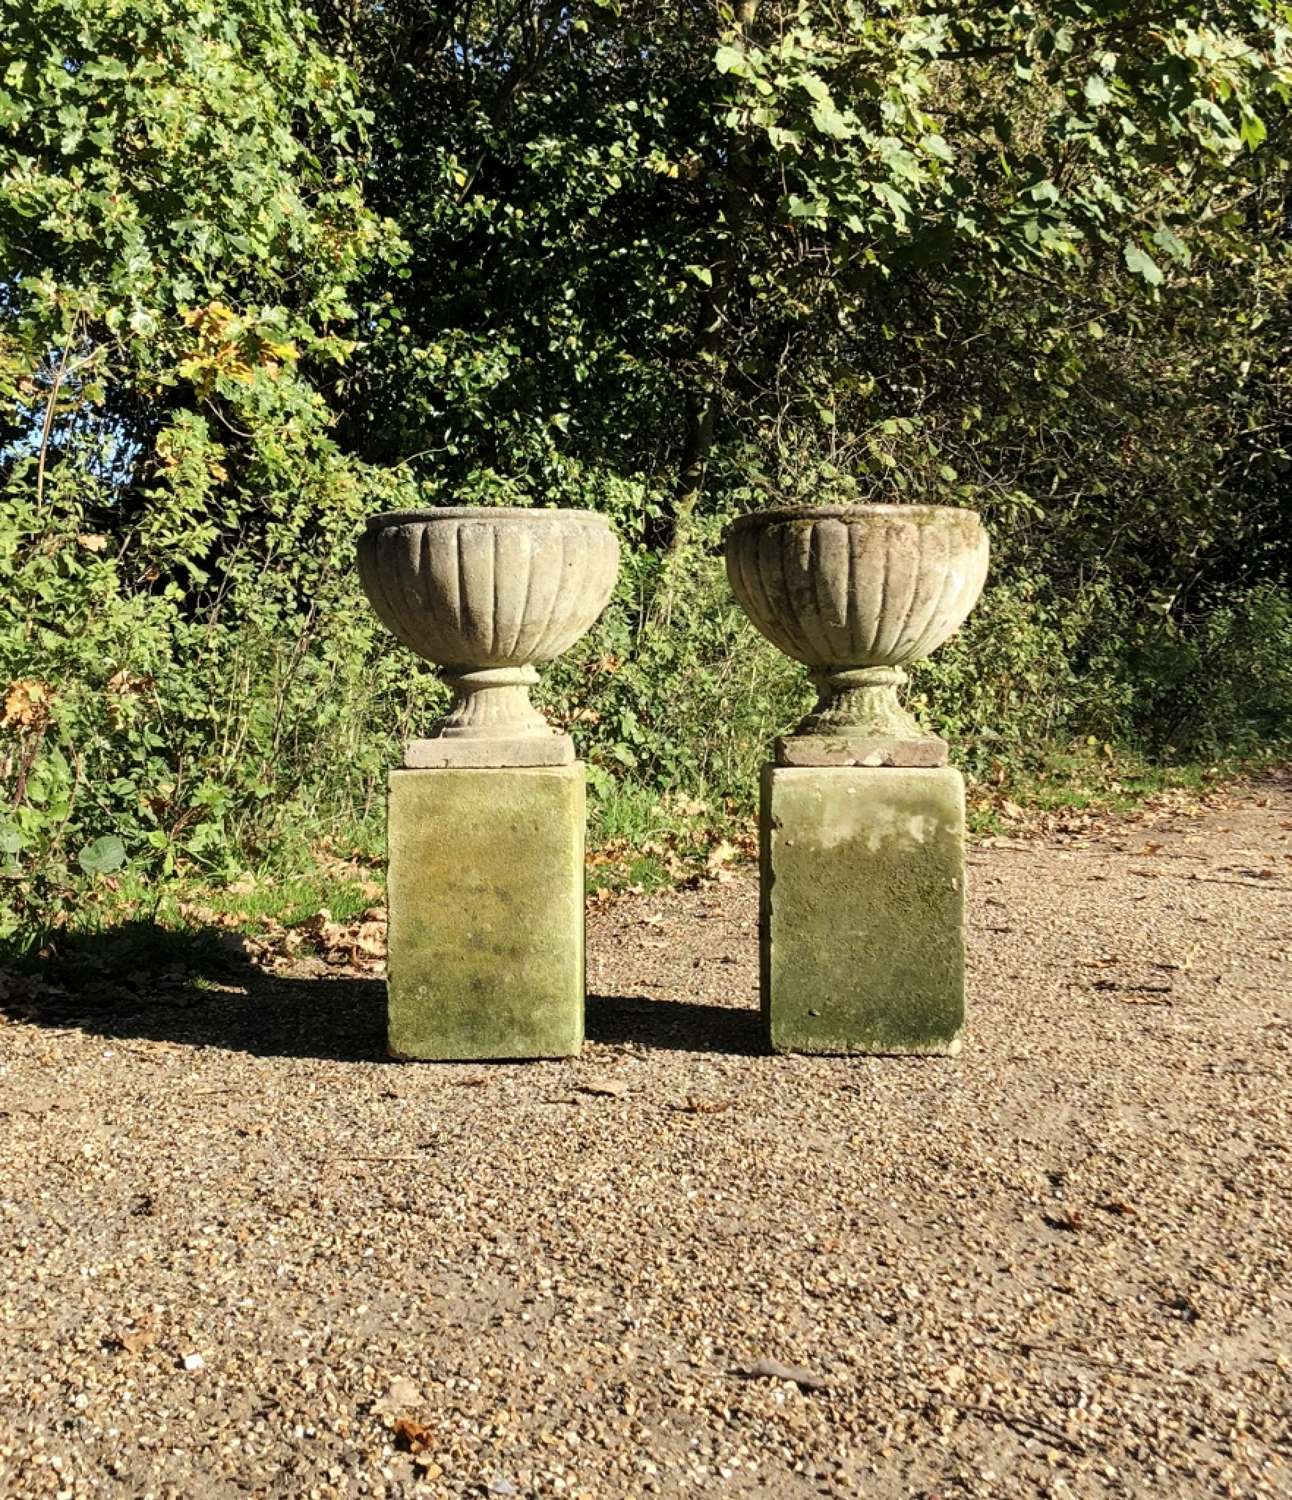 Pair of Small Weathered Urns with Pedestals